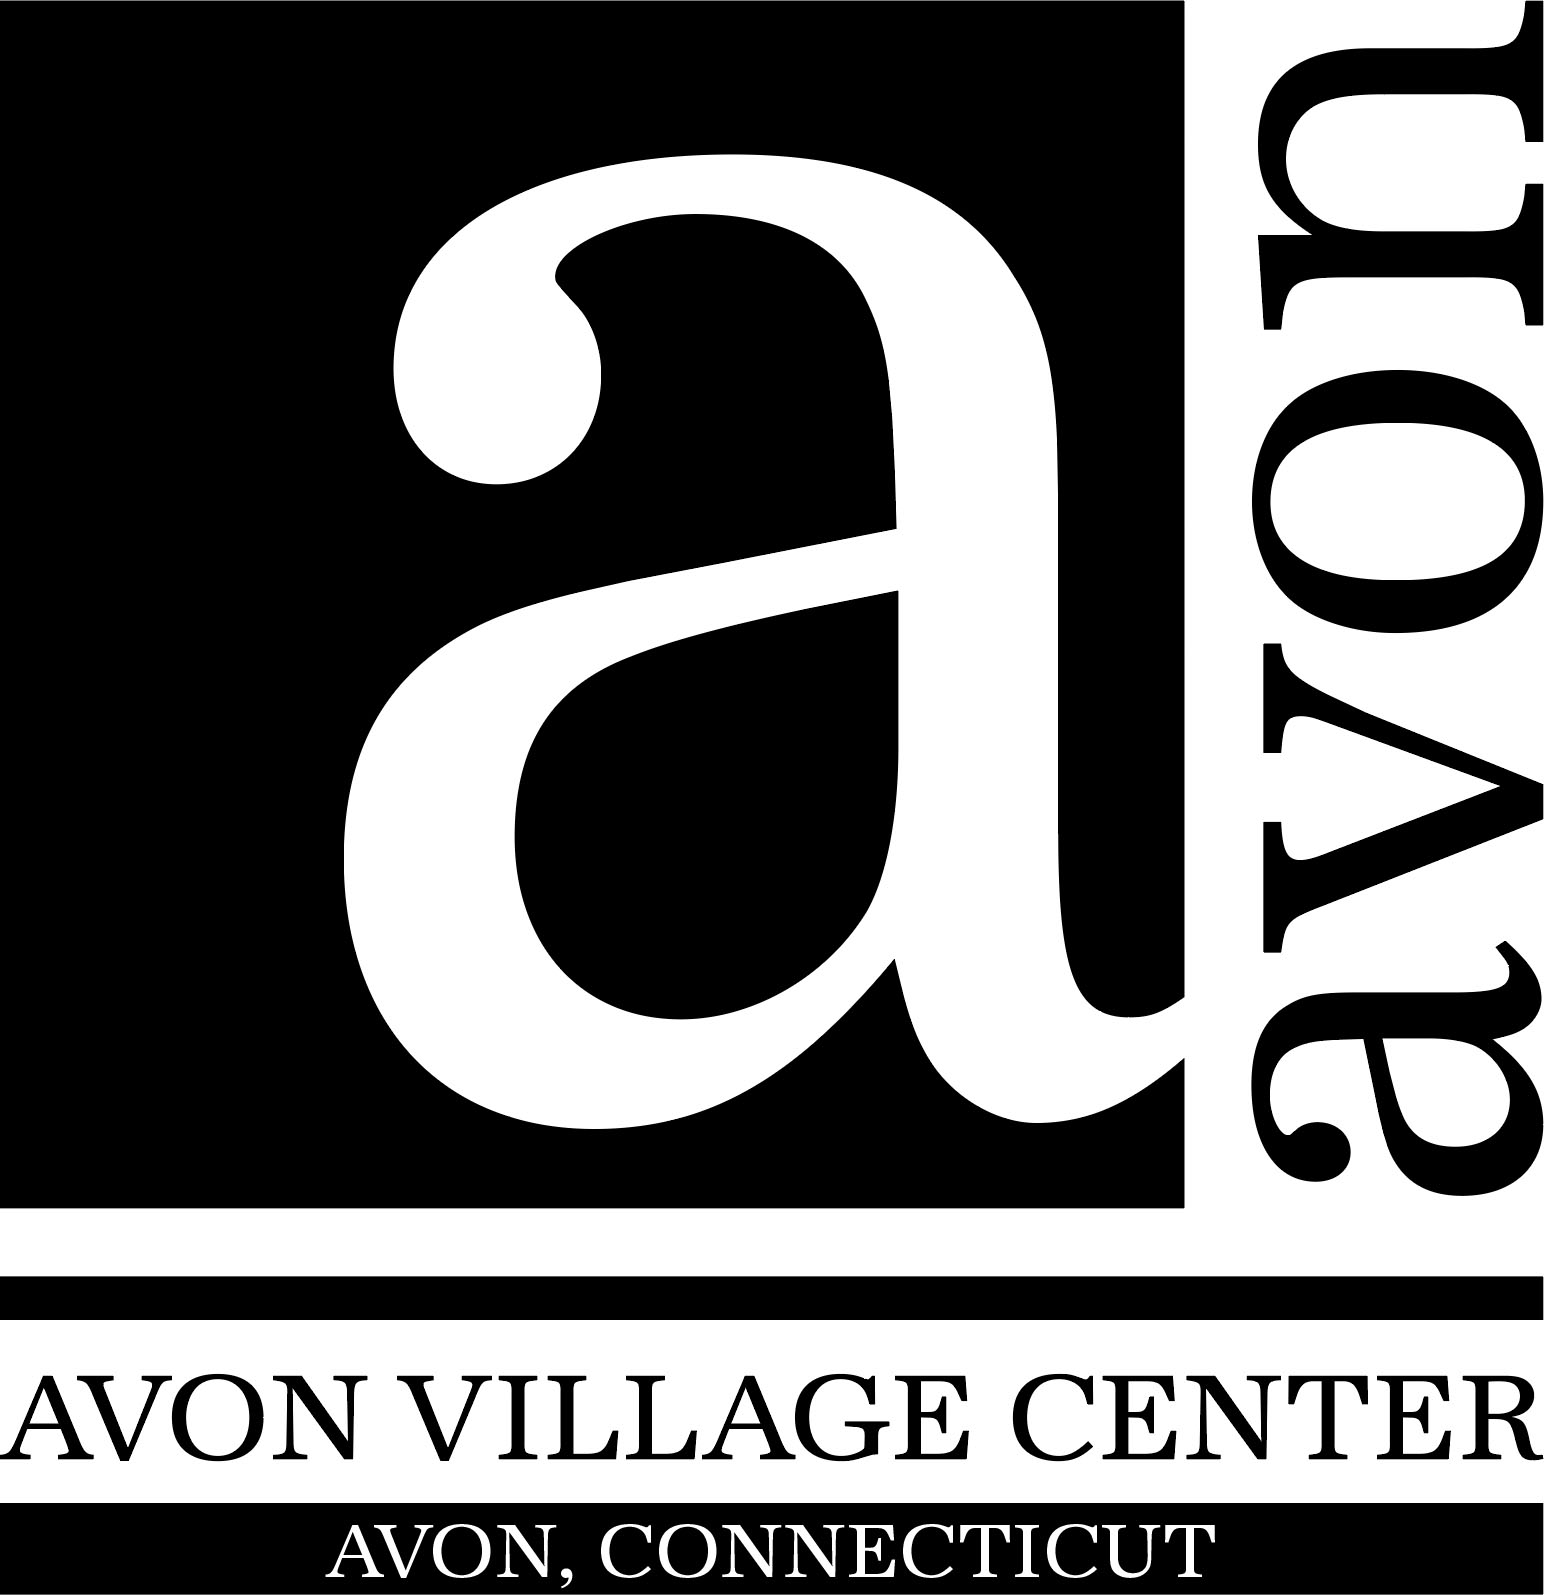 avon-village-center-201901040521545700.jpg